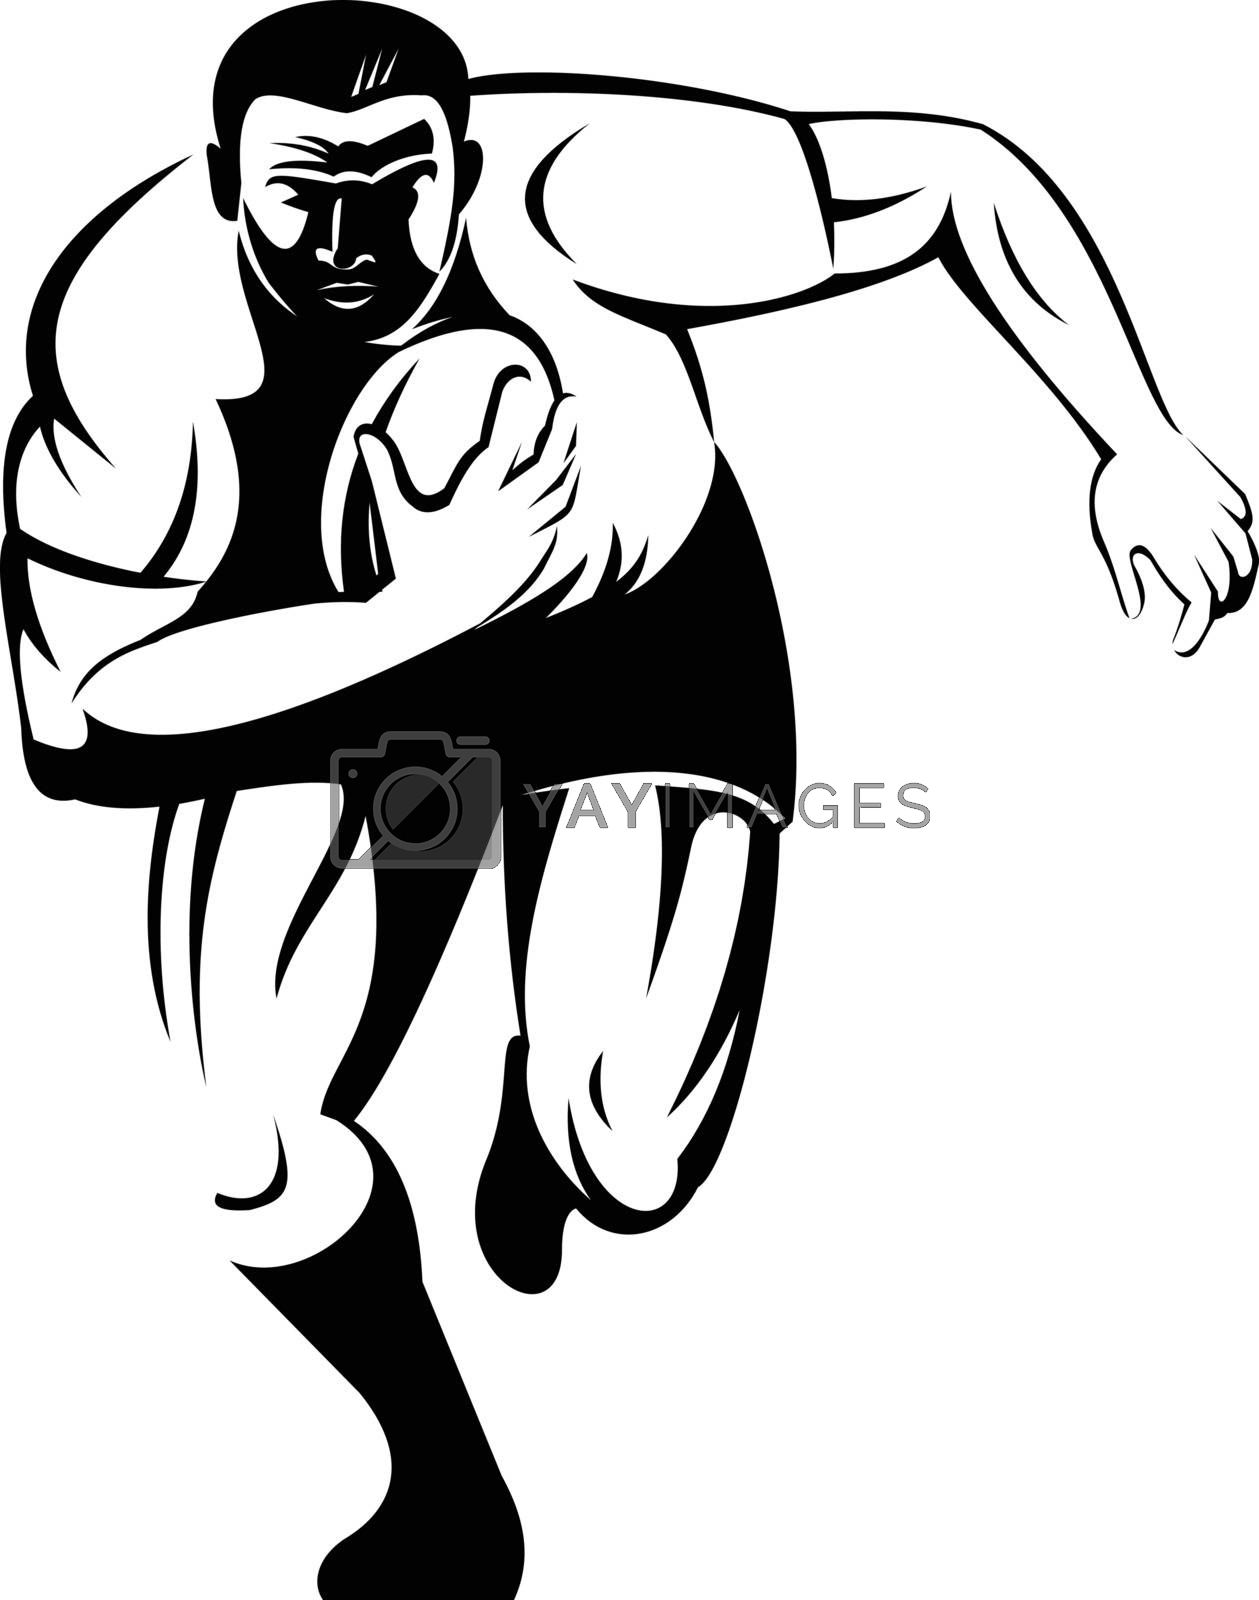 Retro woodcut style illustration of a rugby player running with the ball viewed from front on isolated background done in black and white.